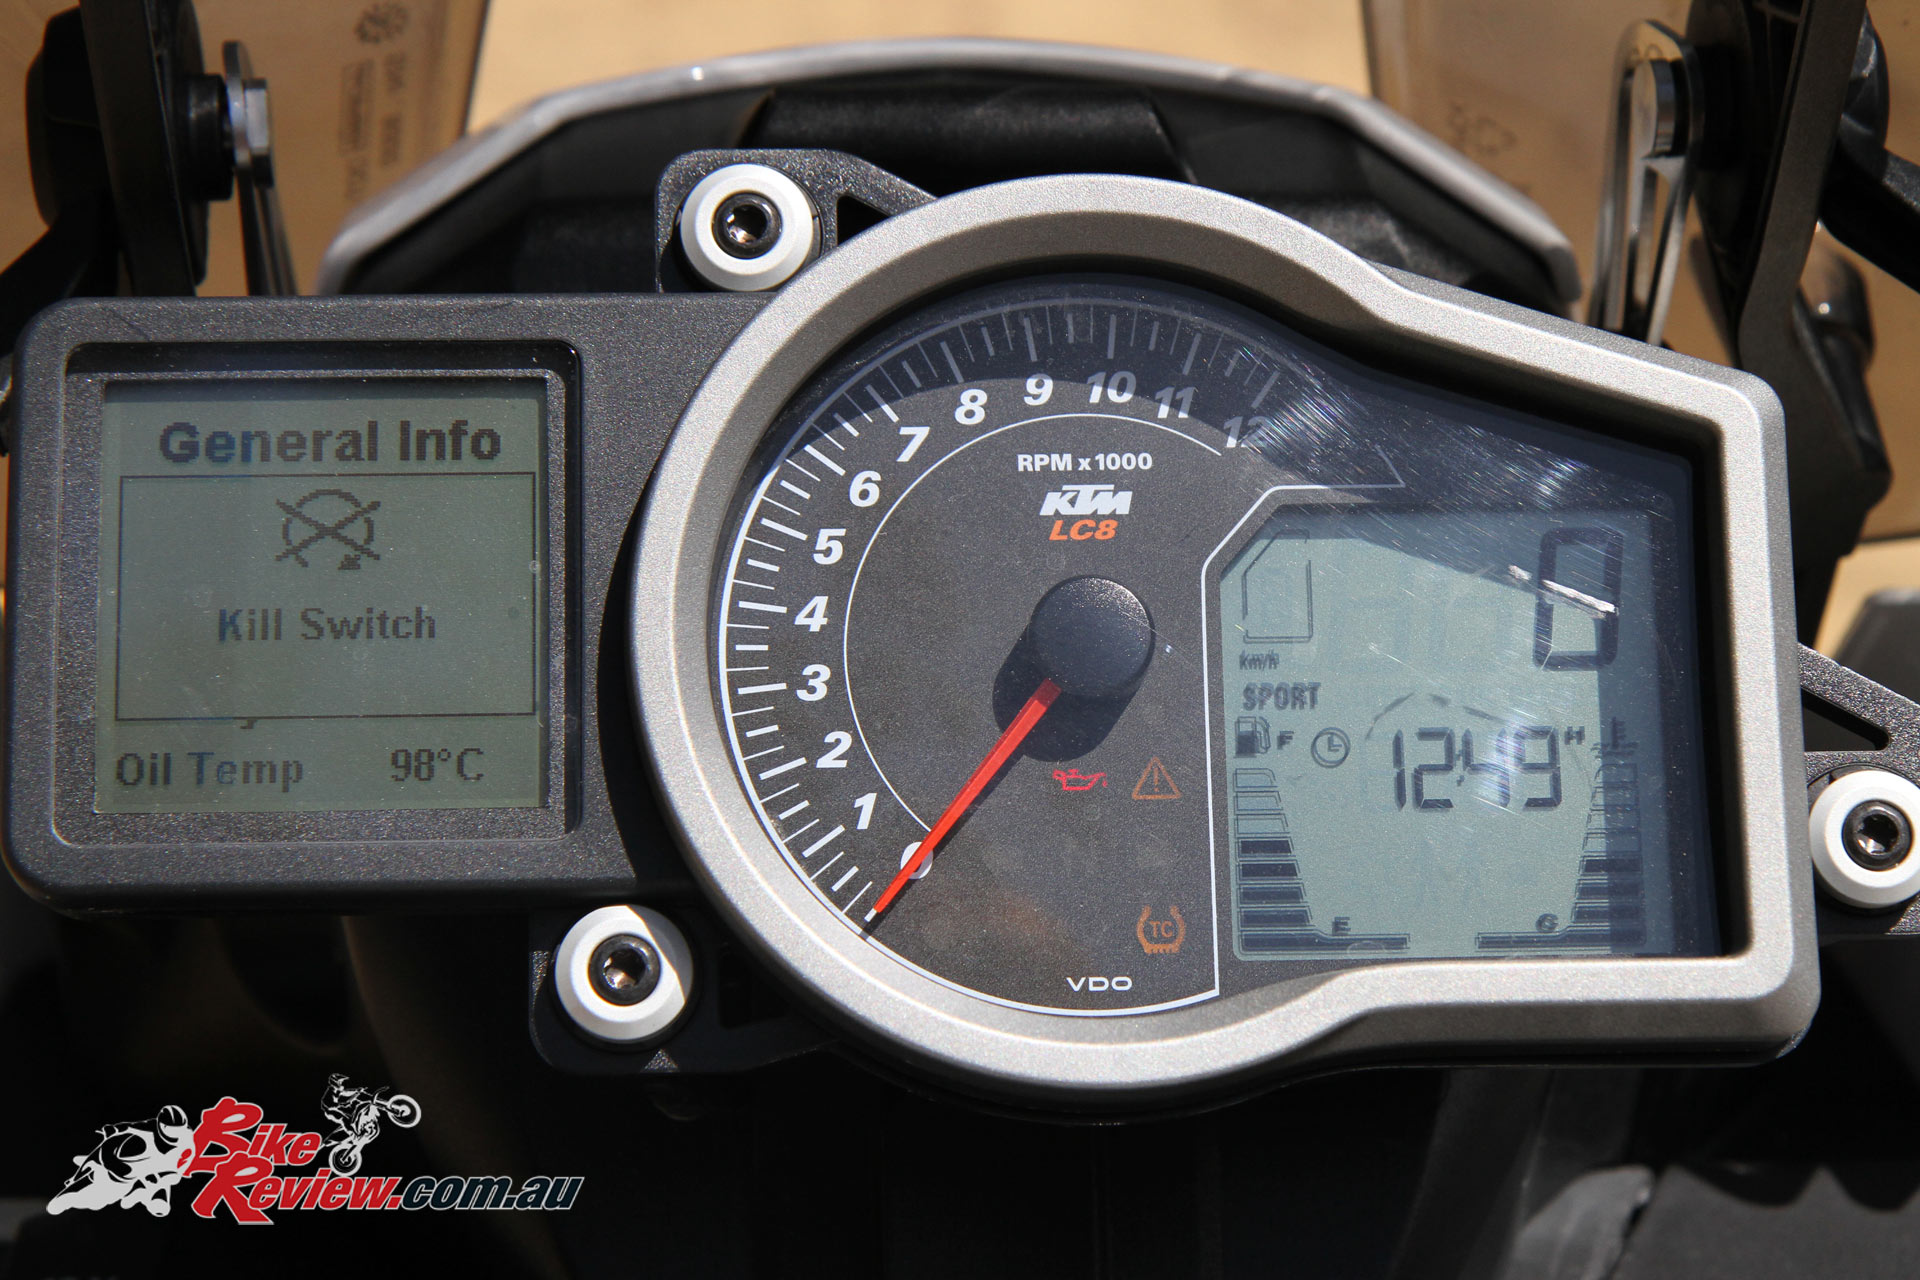 2016 KTM 1190 Adventure R - VDO multi-function display